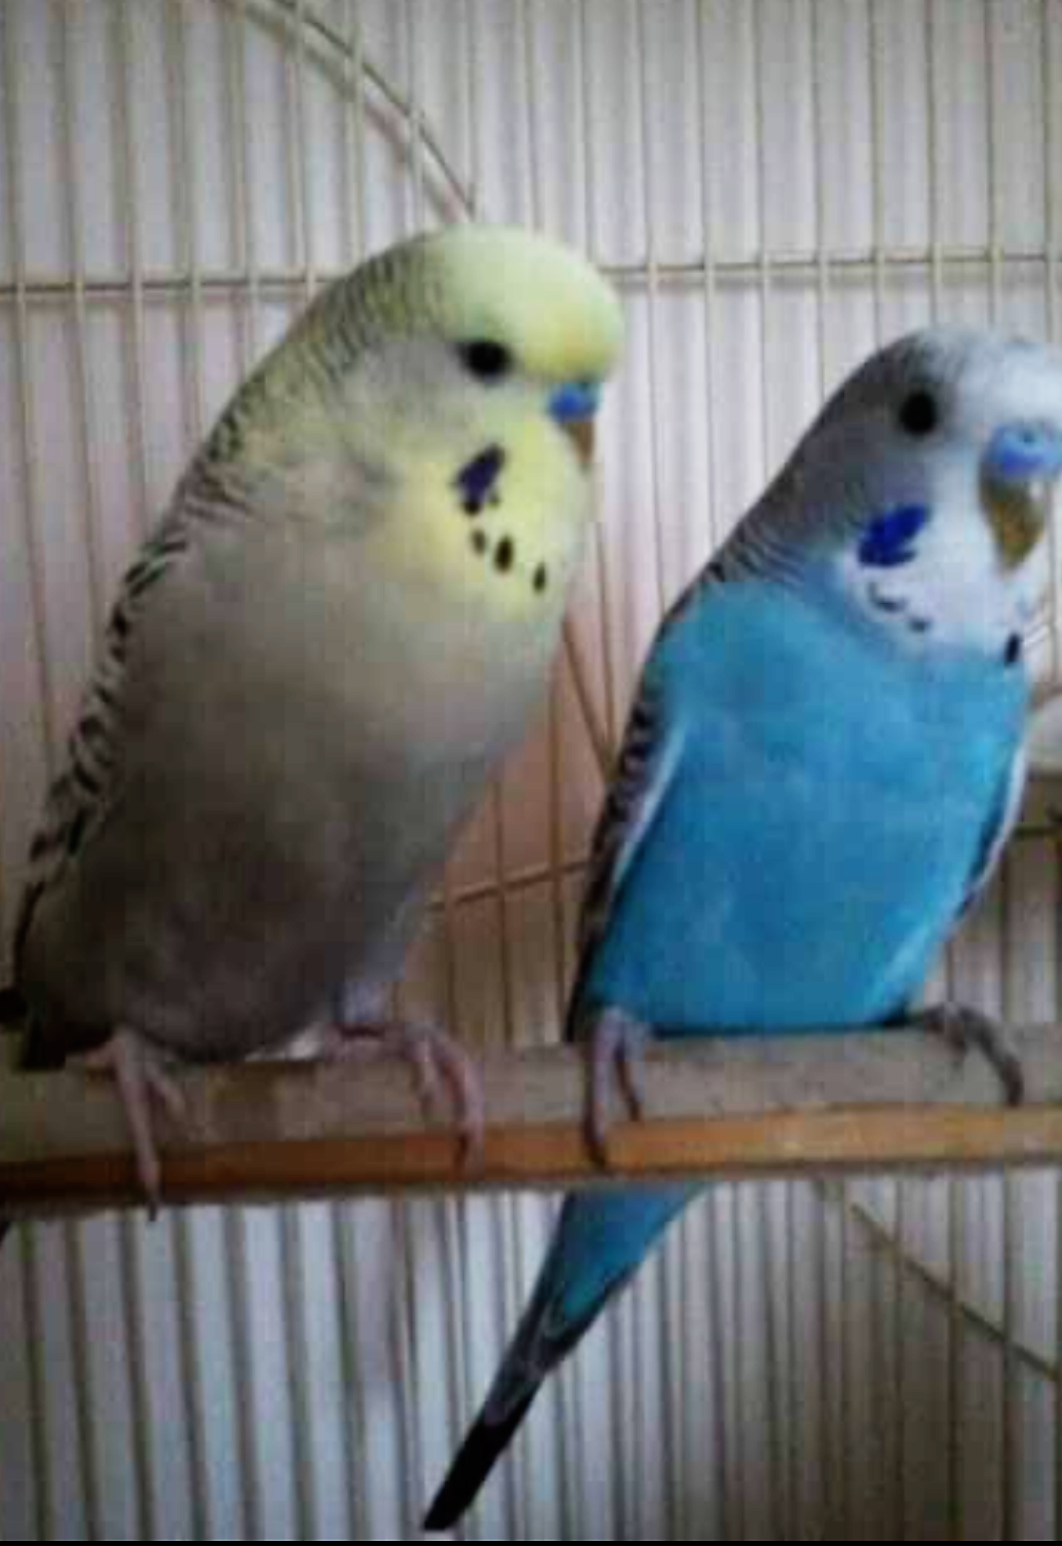 Our Boys the Budgies